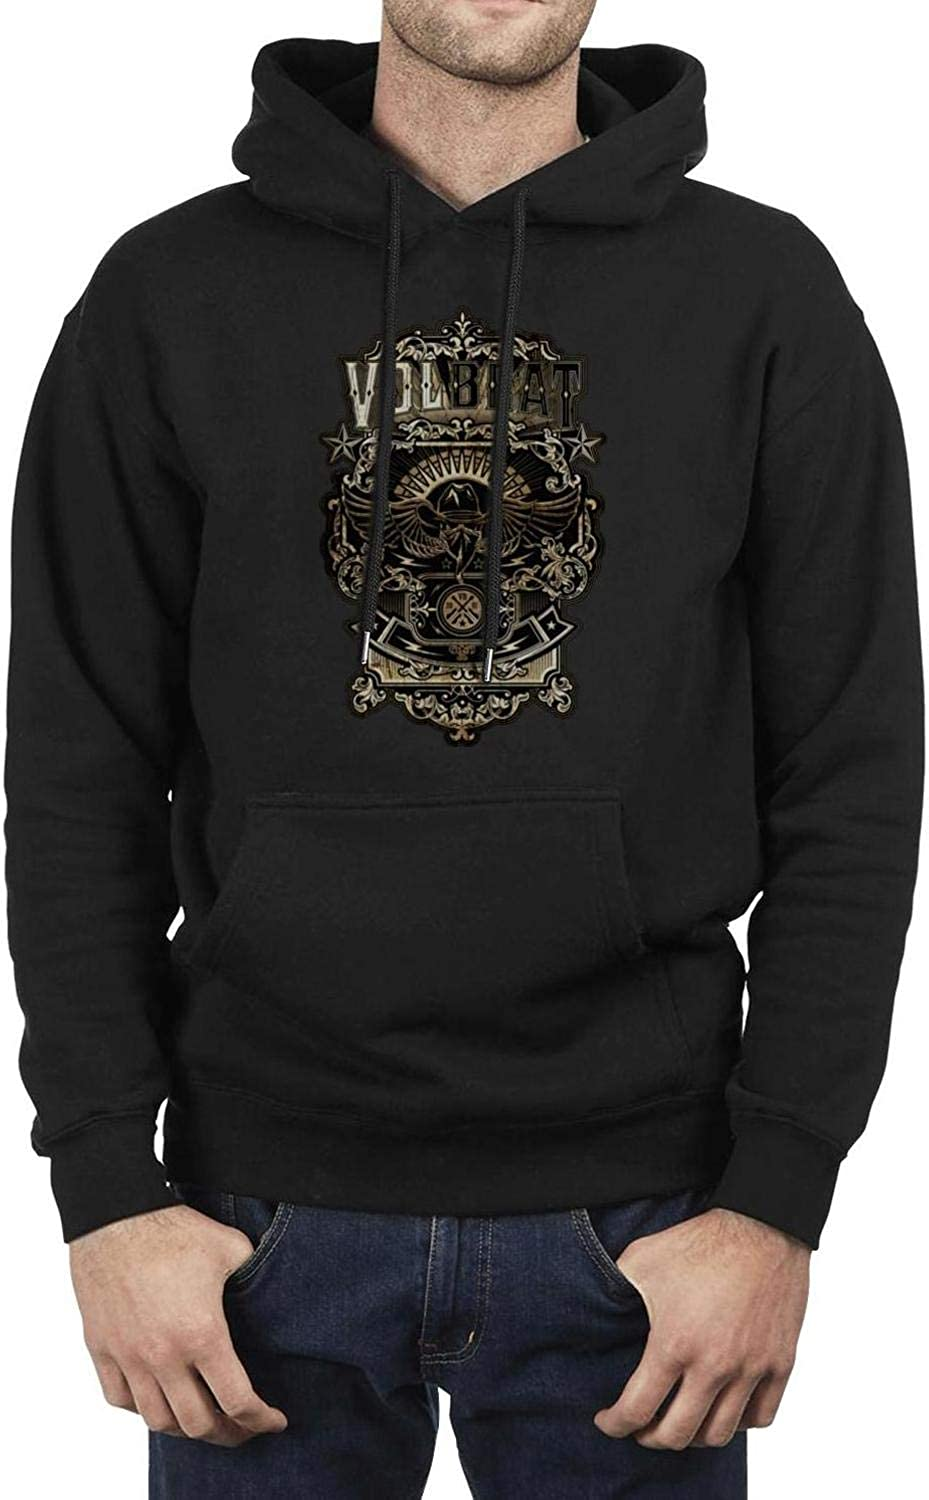 YJRTISF Popular Music Pockets Heavy Blend Funny Trending Fleece Hoodie Sweatshirt for Mens Guys